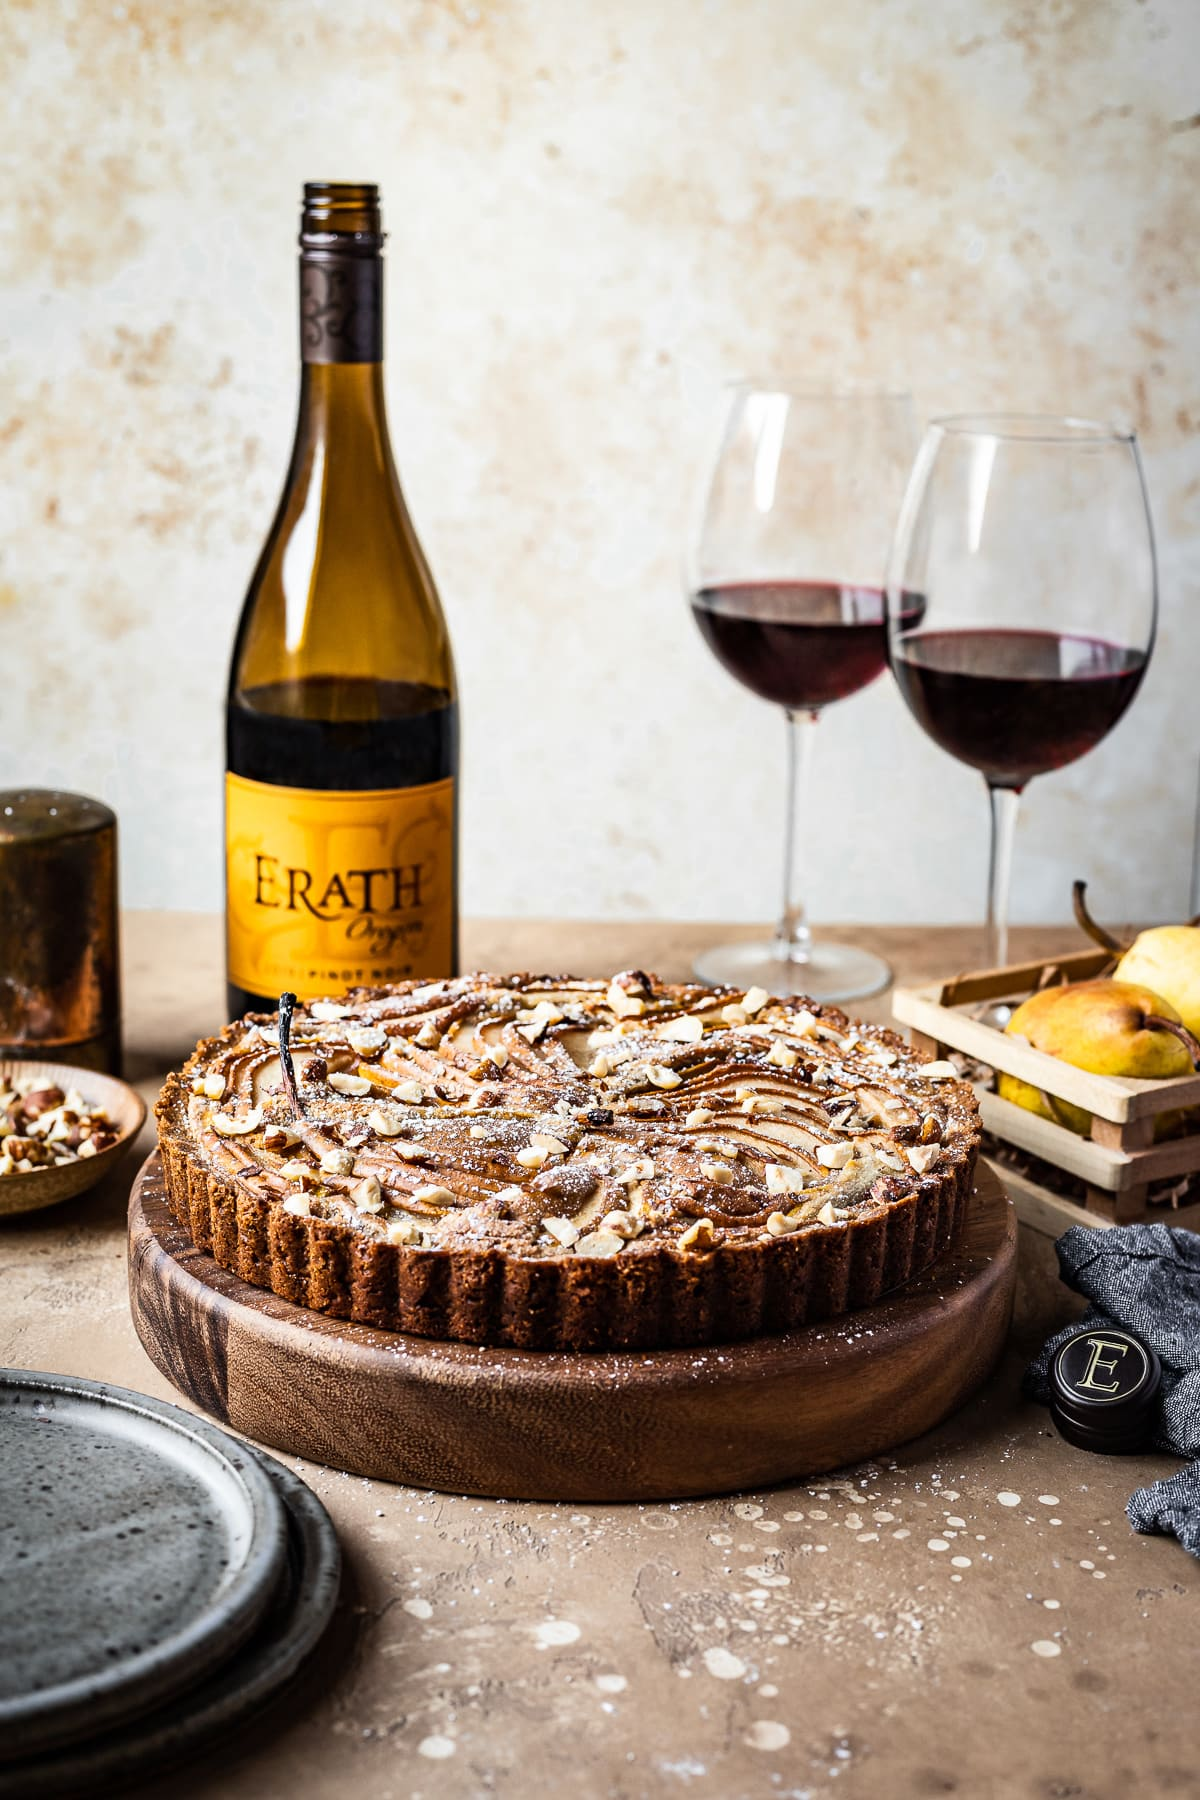 A front view of a pear tart on a round wooden platter on a textured warm tan background. The tart is surrounded by blue grey ceramic plates, an opened bottle of red wine, two half full glasses of red wine, a small wooden crate of pears, and a textured grey napkin.